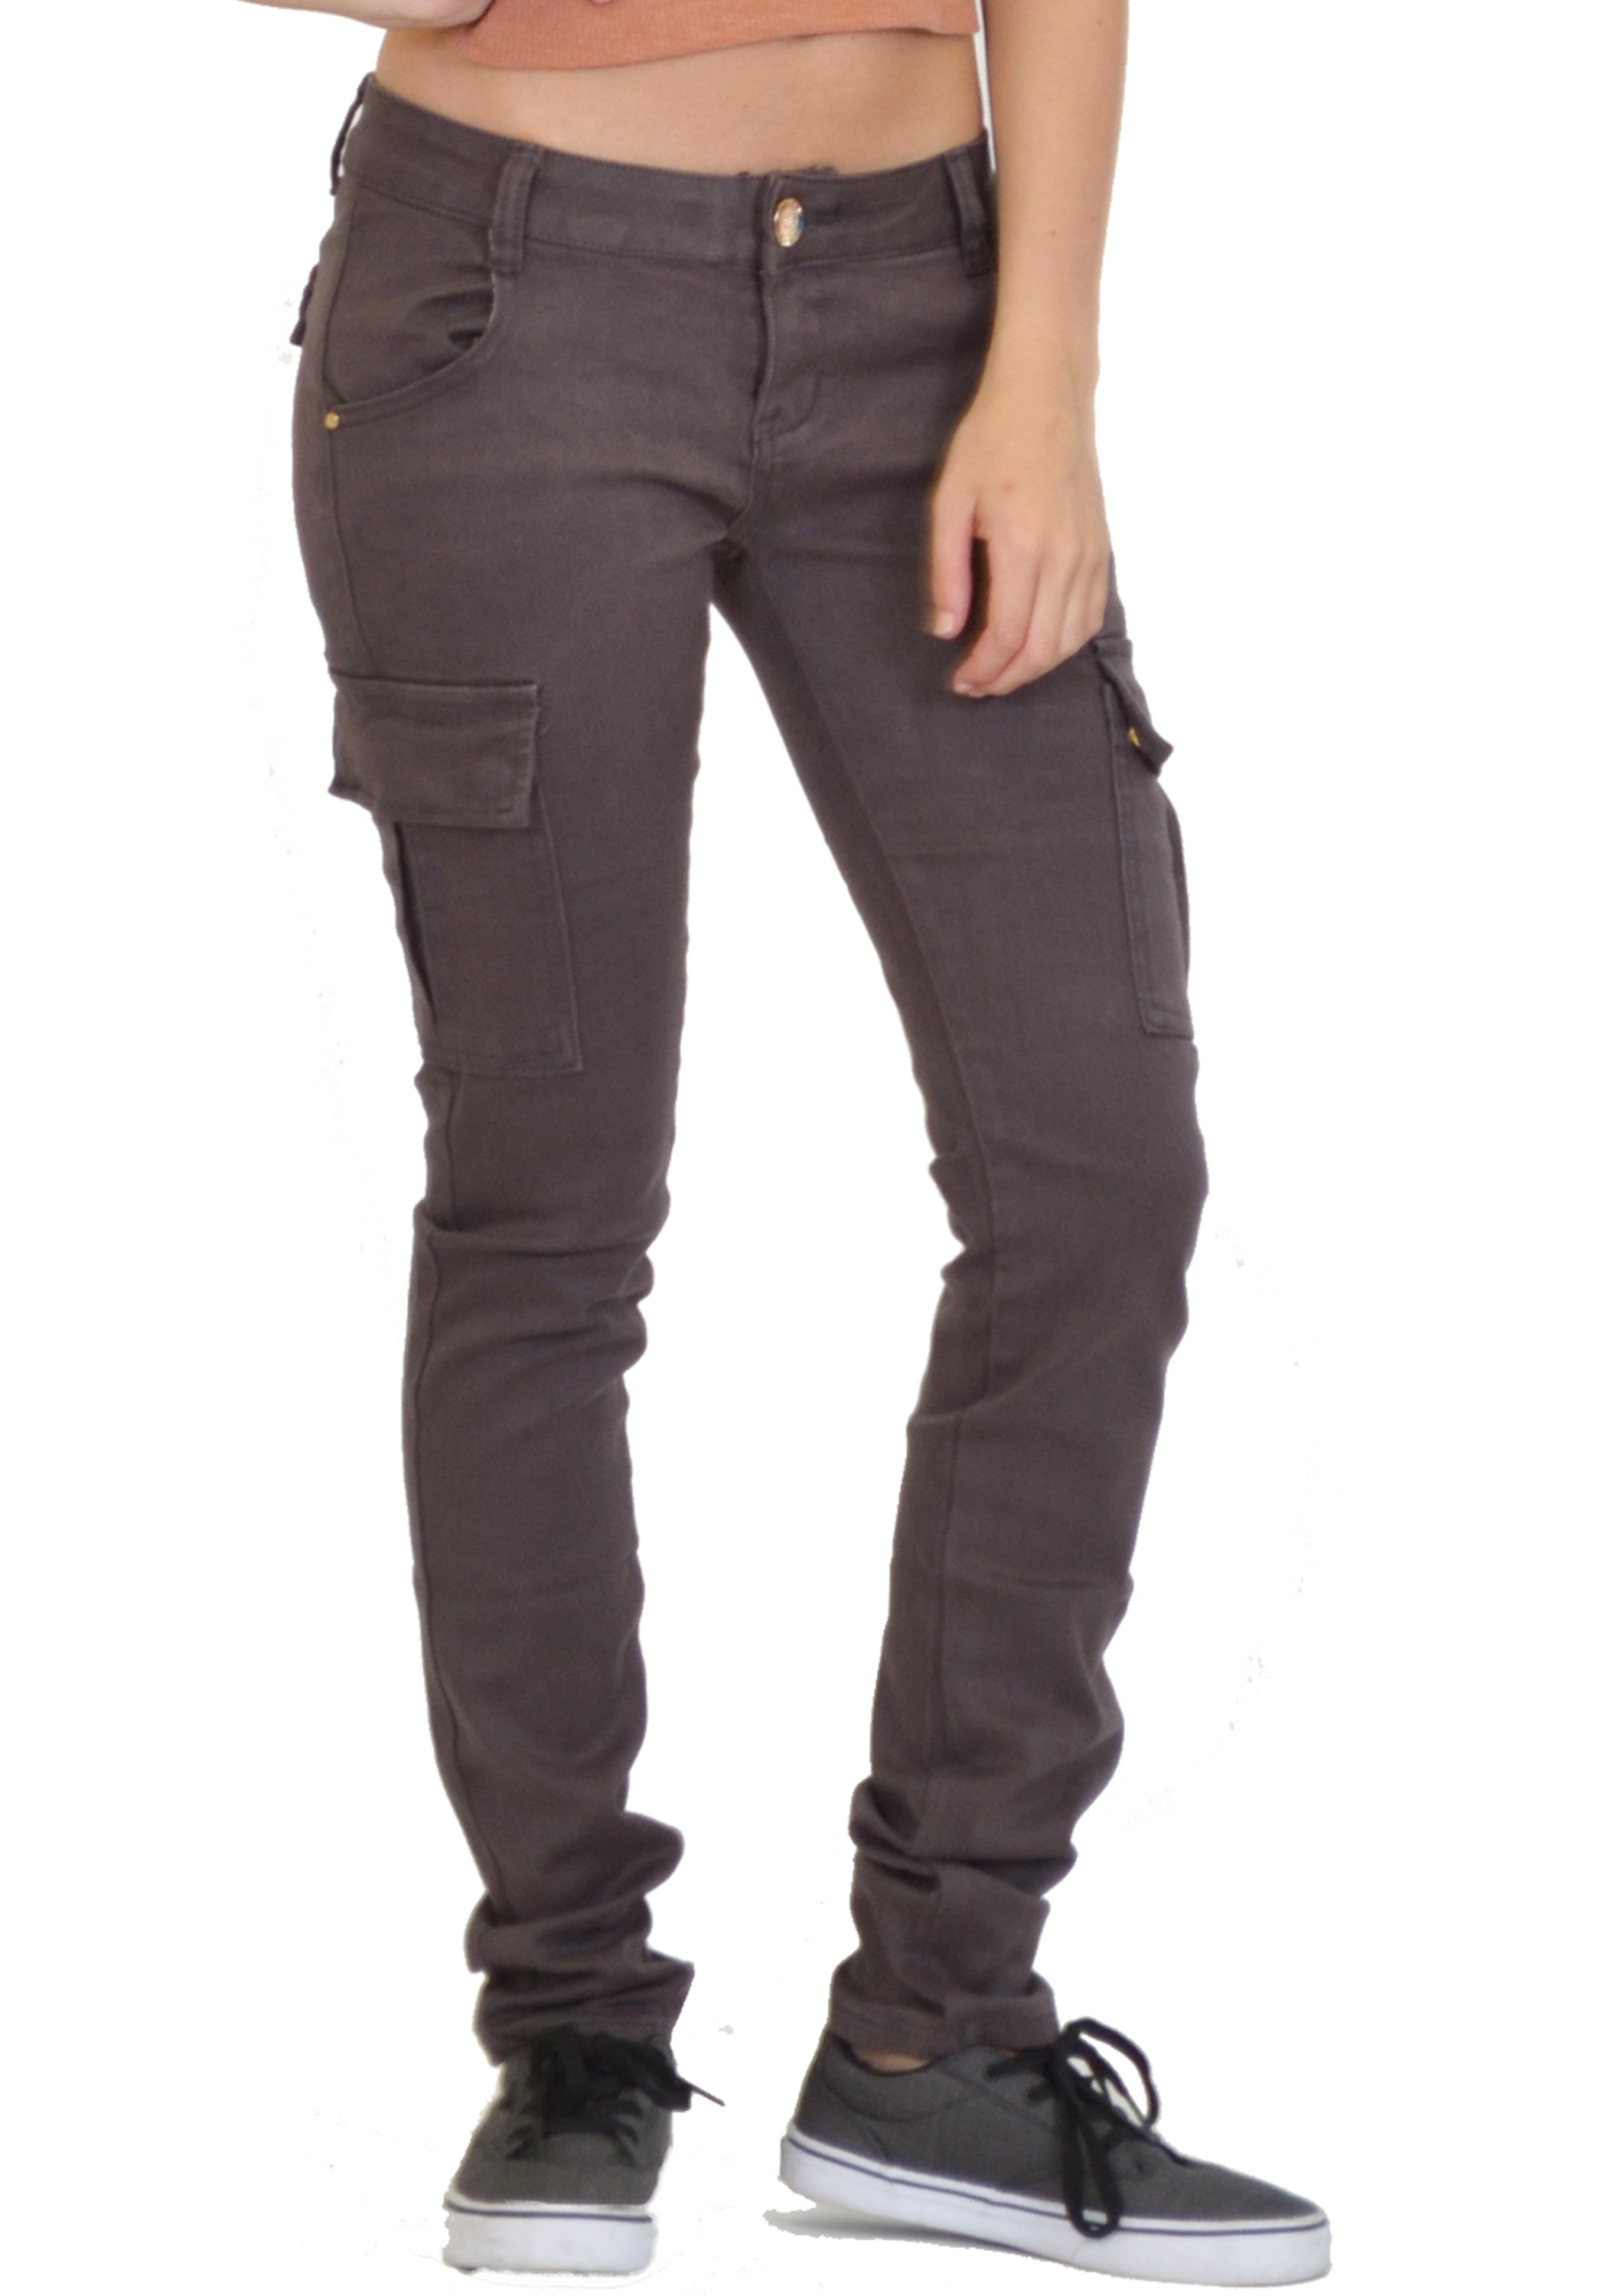 Beautiful New Ladies Womens Slim Skinny Fitted Stretch Combat Jeans Cargo Pants